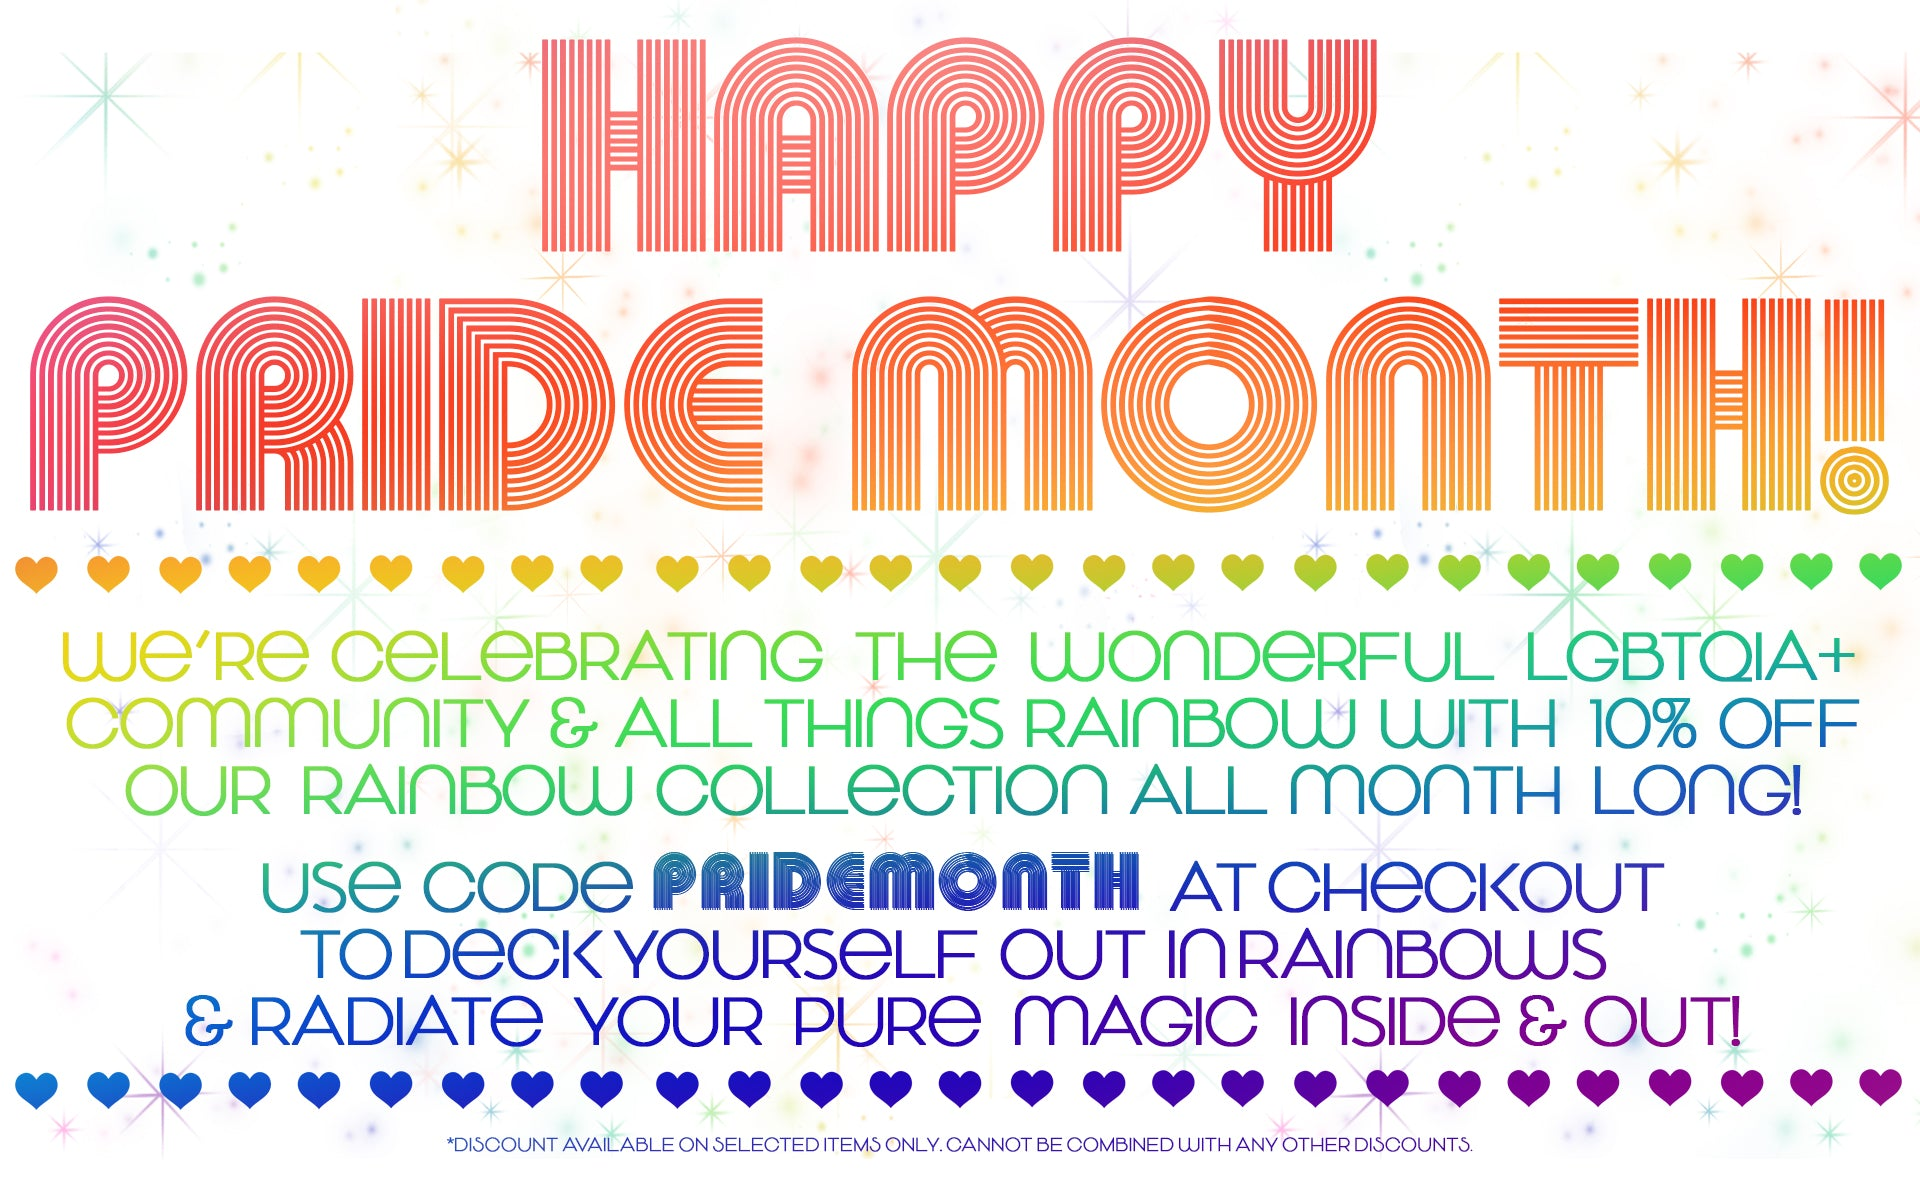 rainbow pride collection 10% off